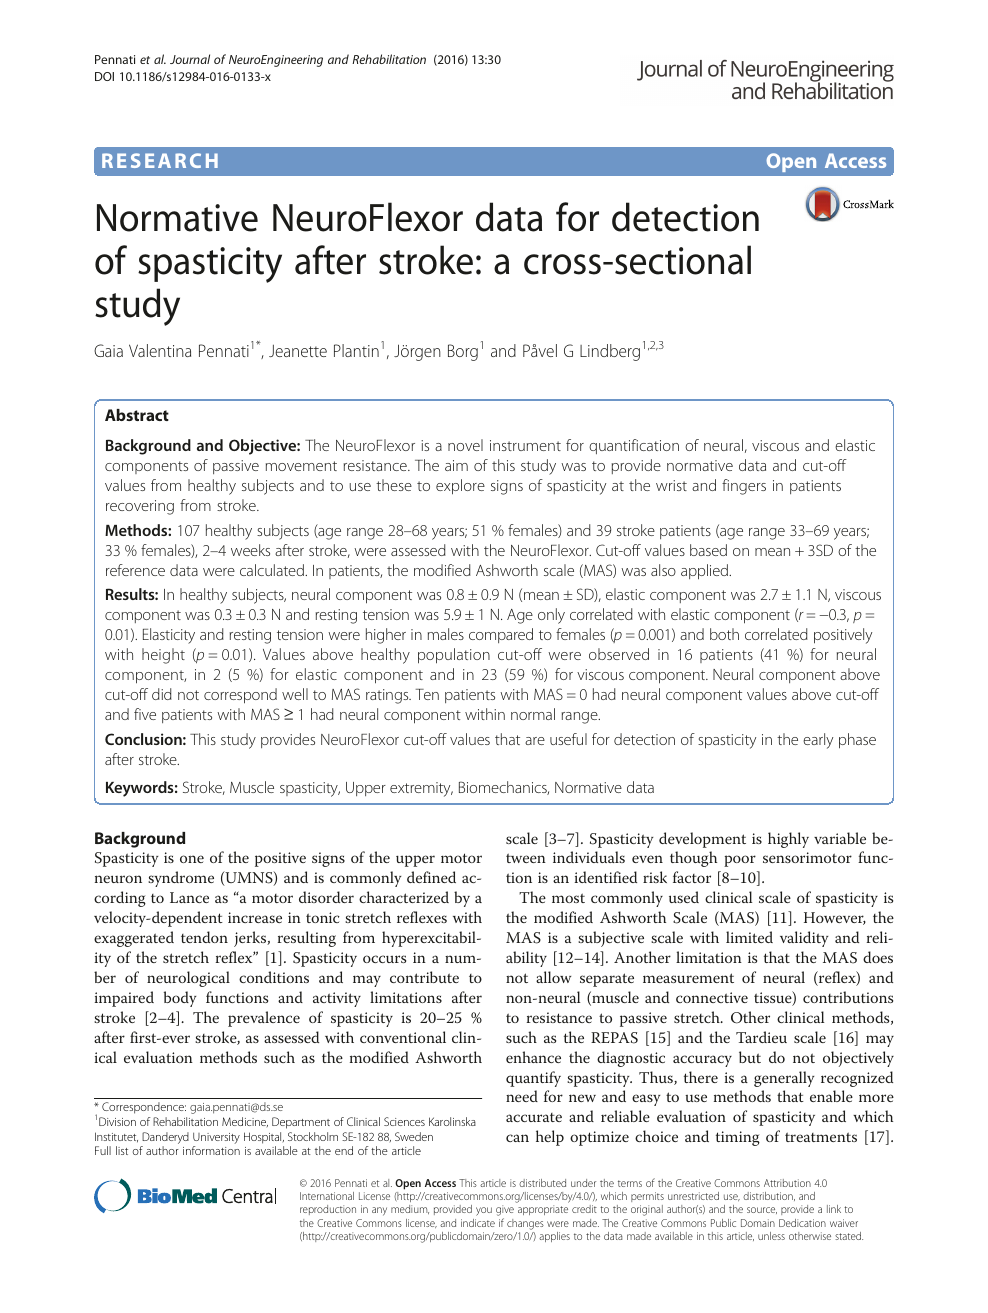 Normative NeuroFlexor data for detection of spasticity after